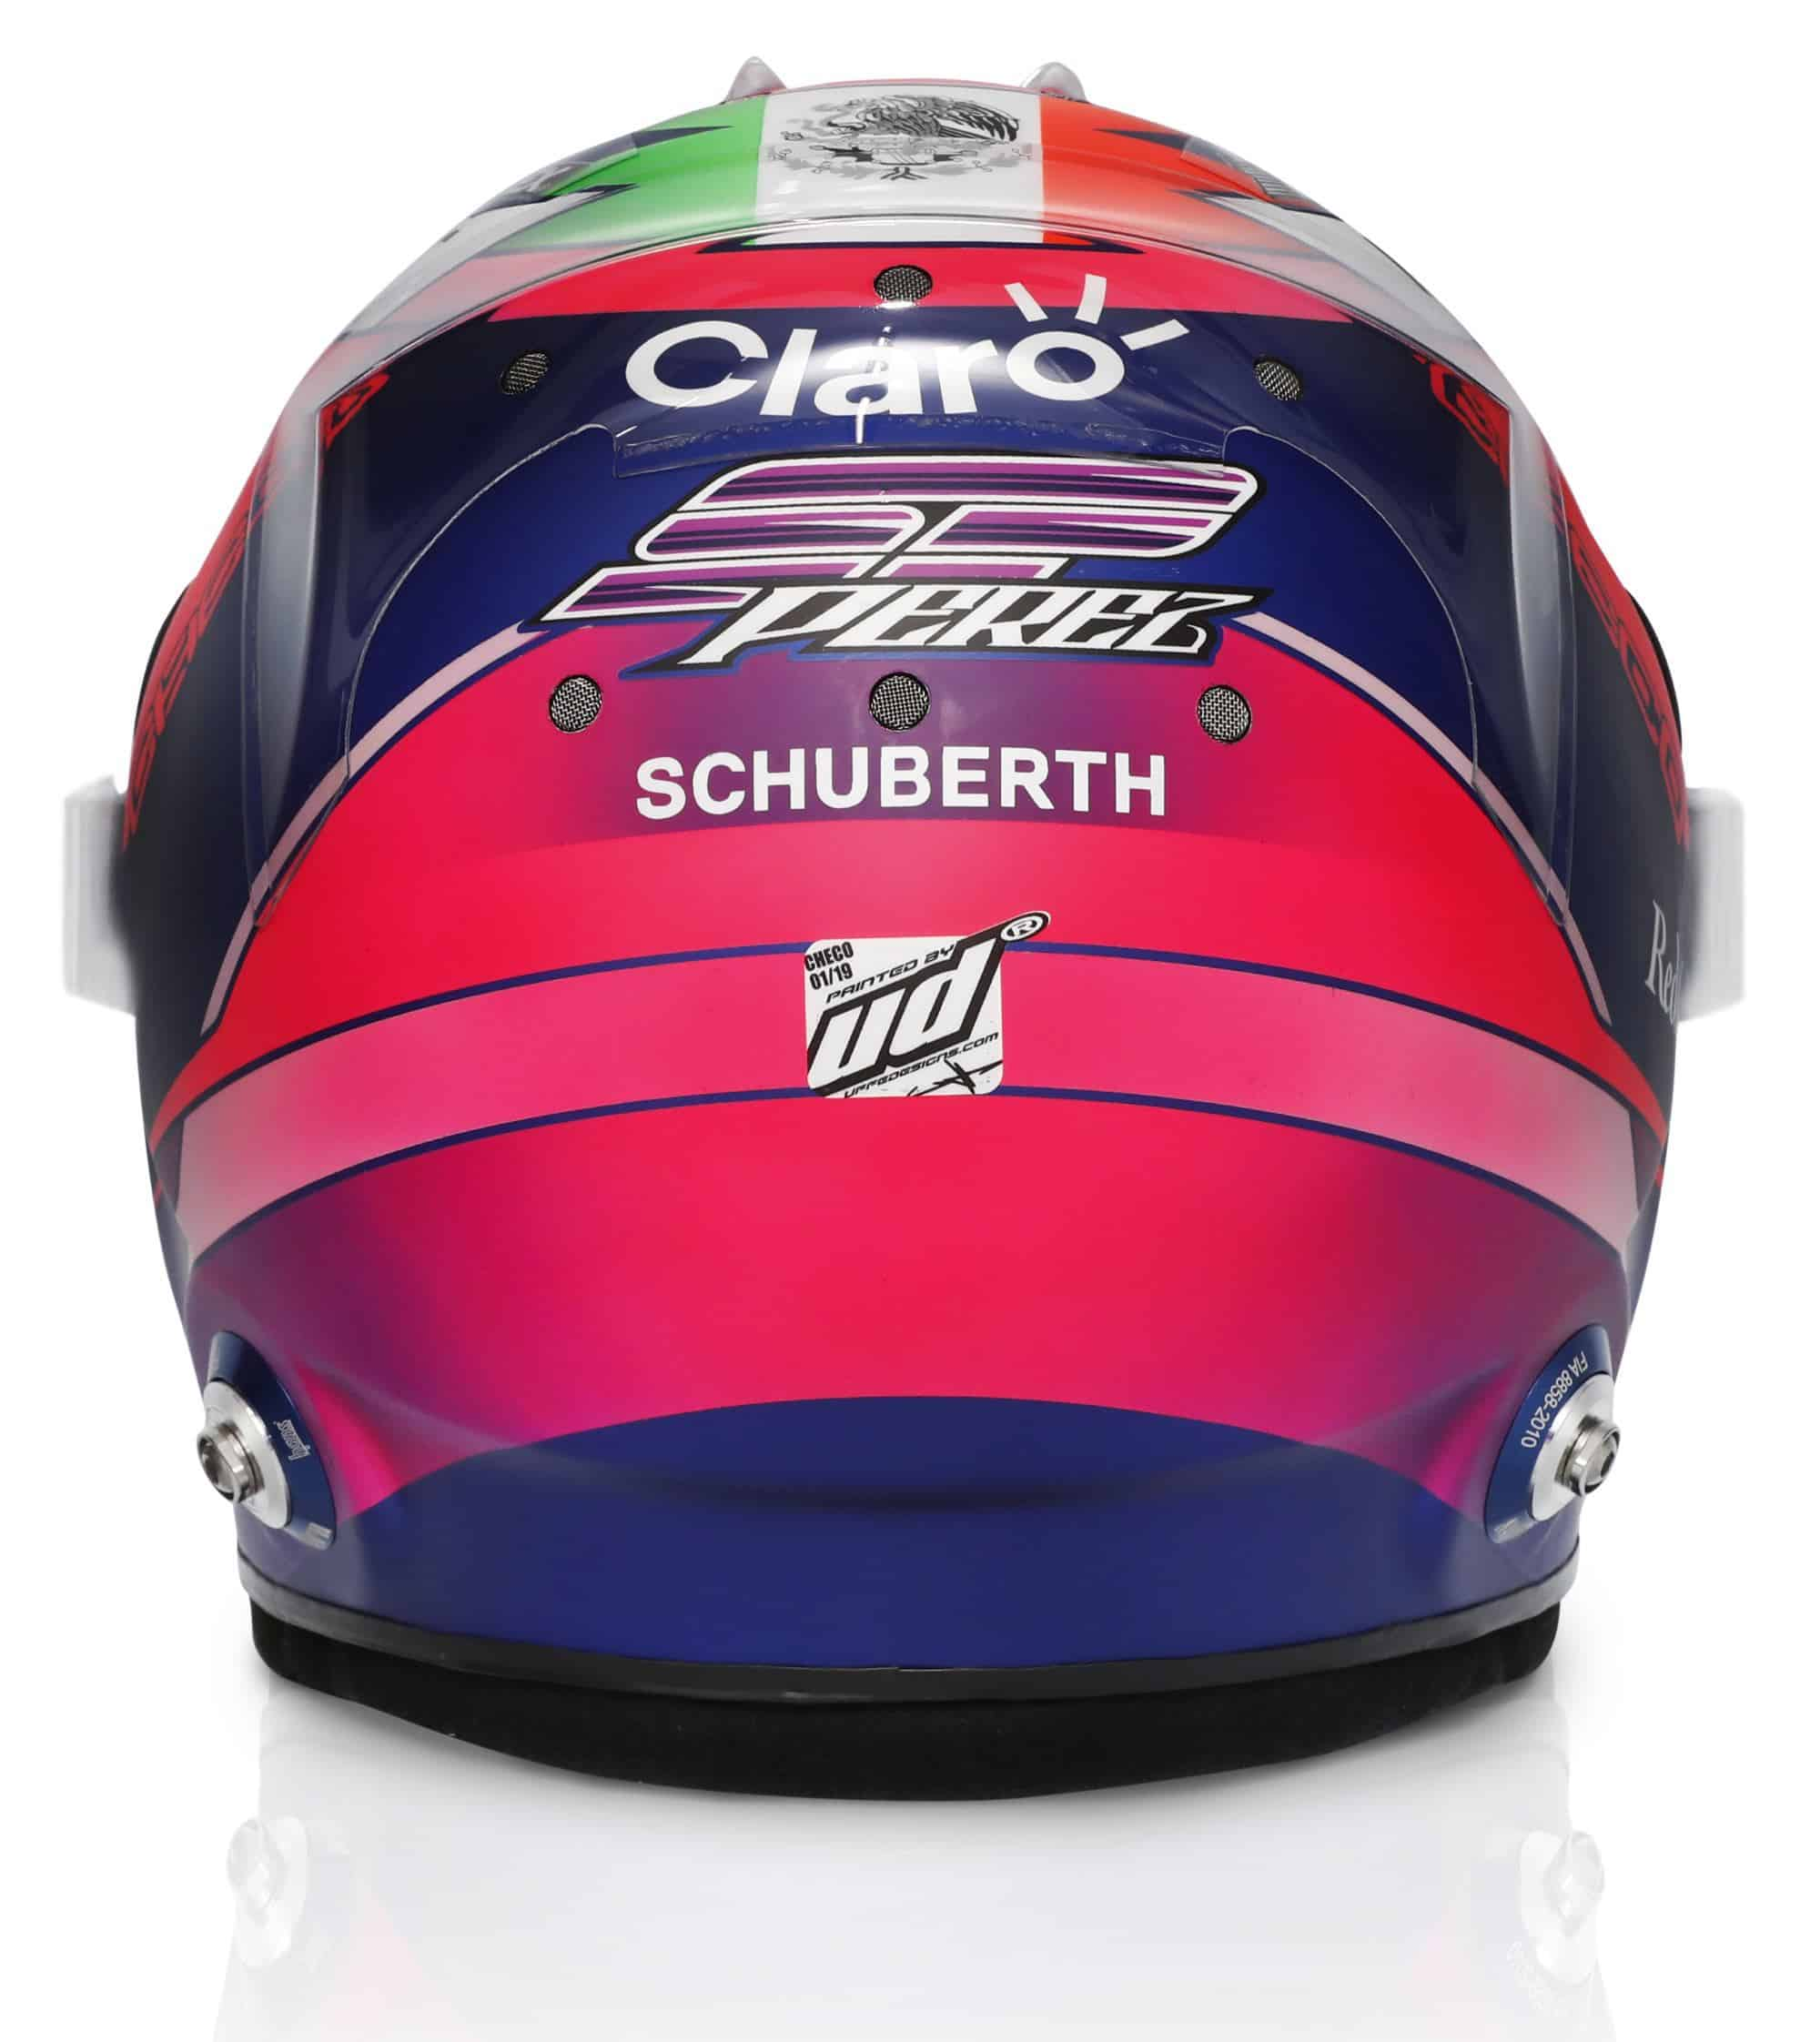 2019 Sport Pesa Racing Point Sergio Perez helmet rear Photo Racing Point Edited by MAXF1net